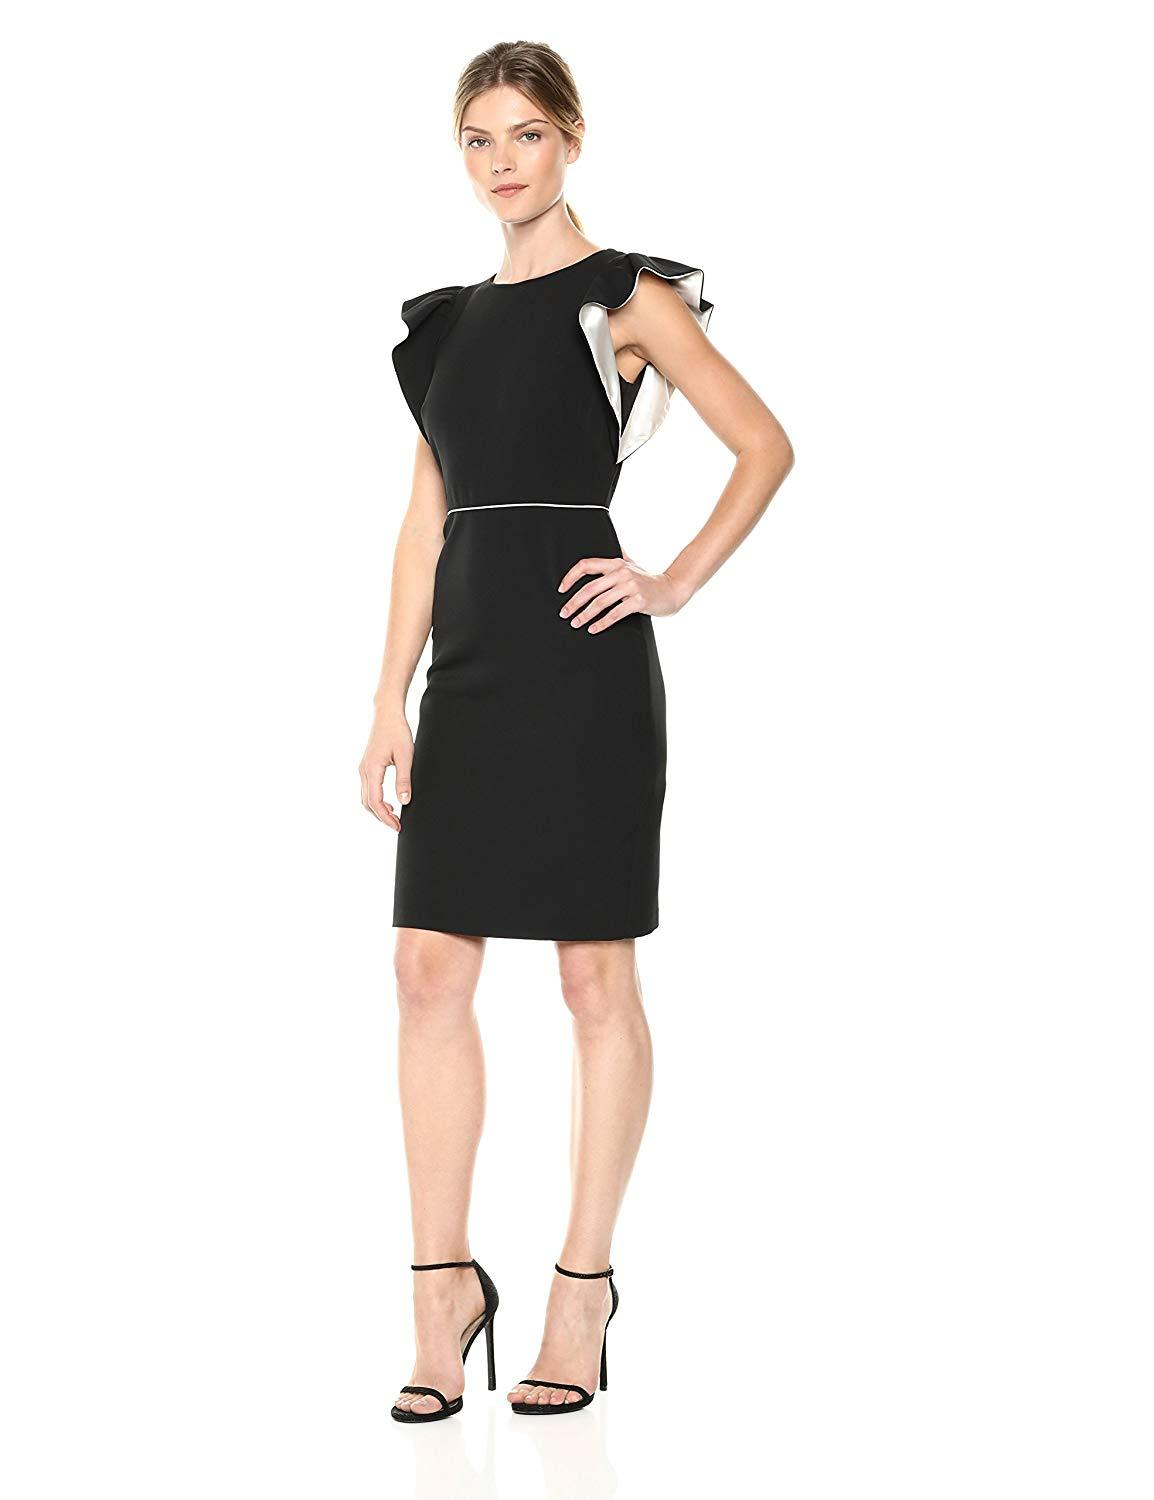 Taylor - 9794M Knee Length Flutter Sleeve Sheath Dress In Black and White